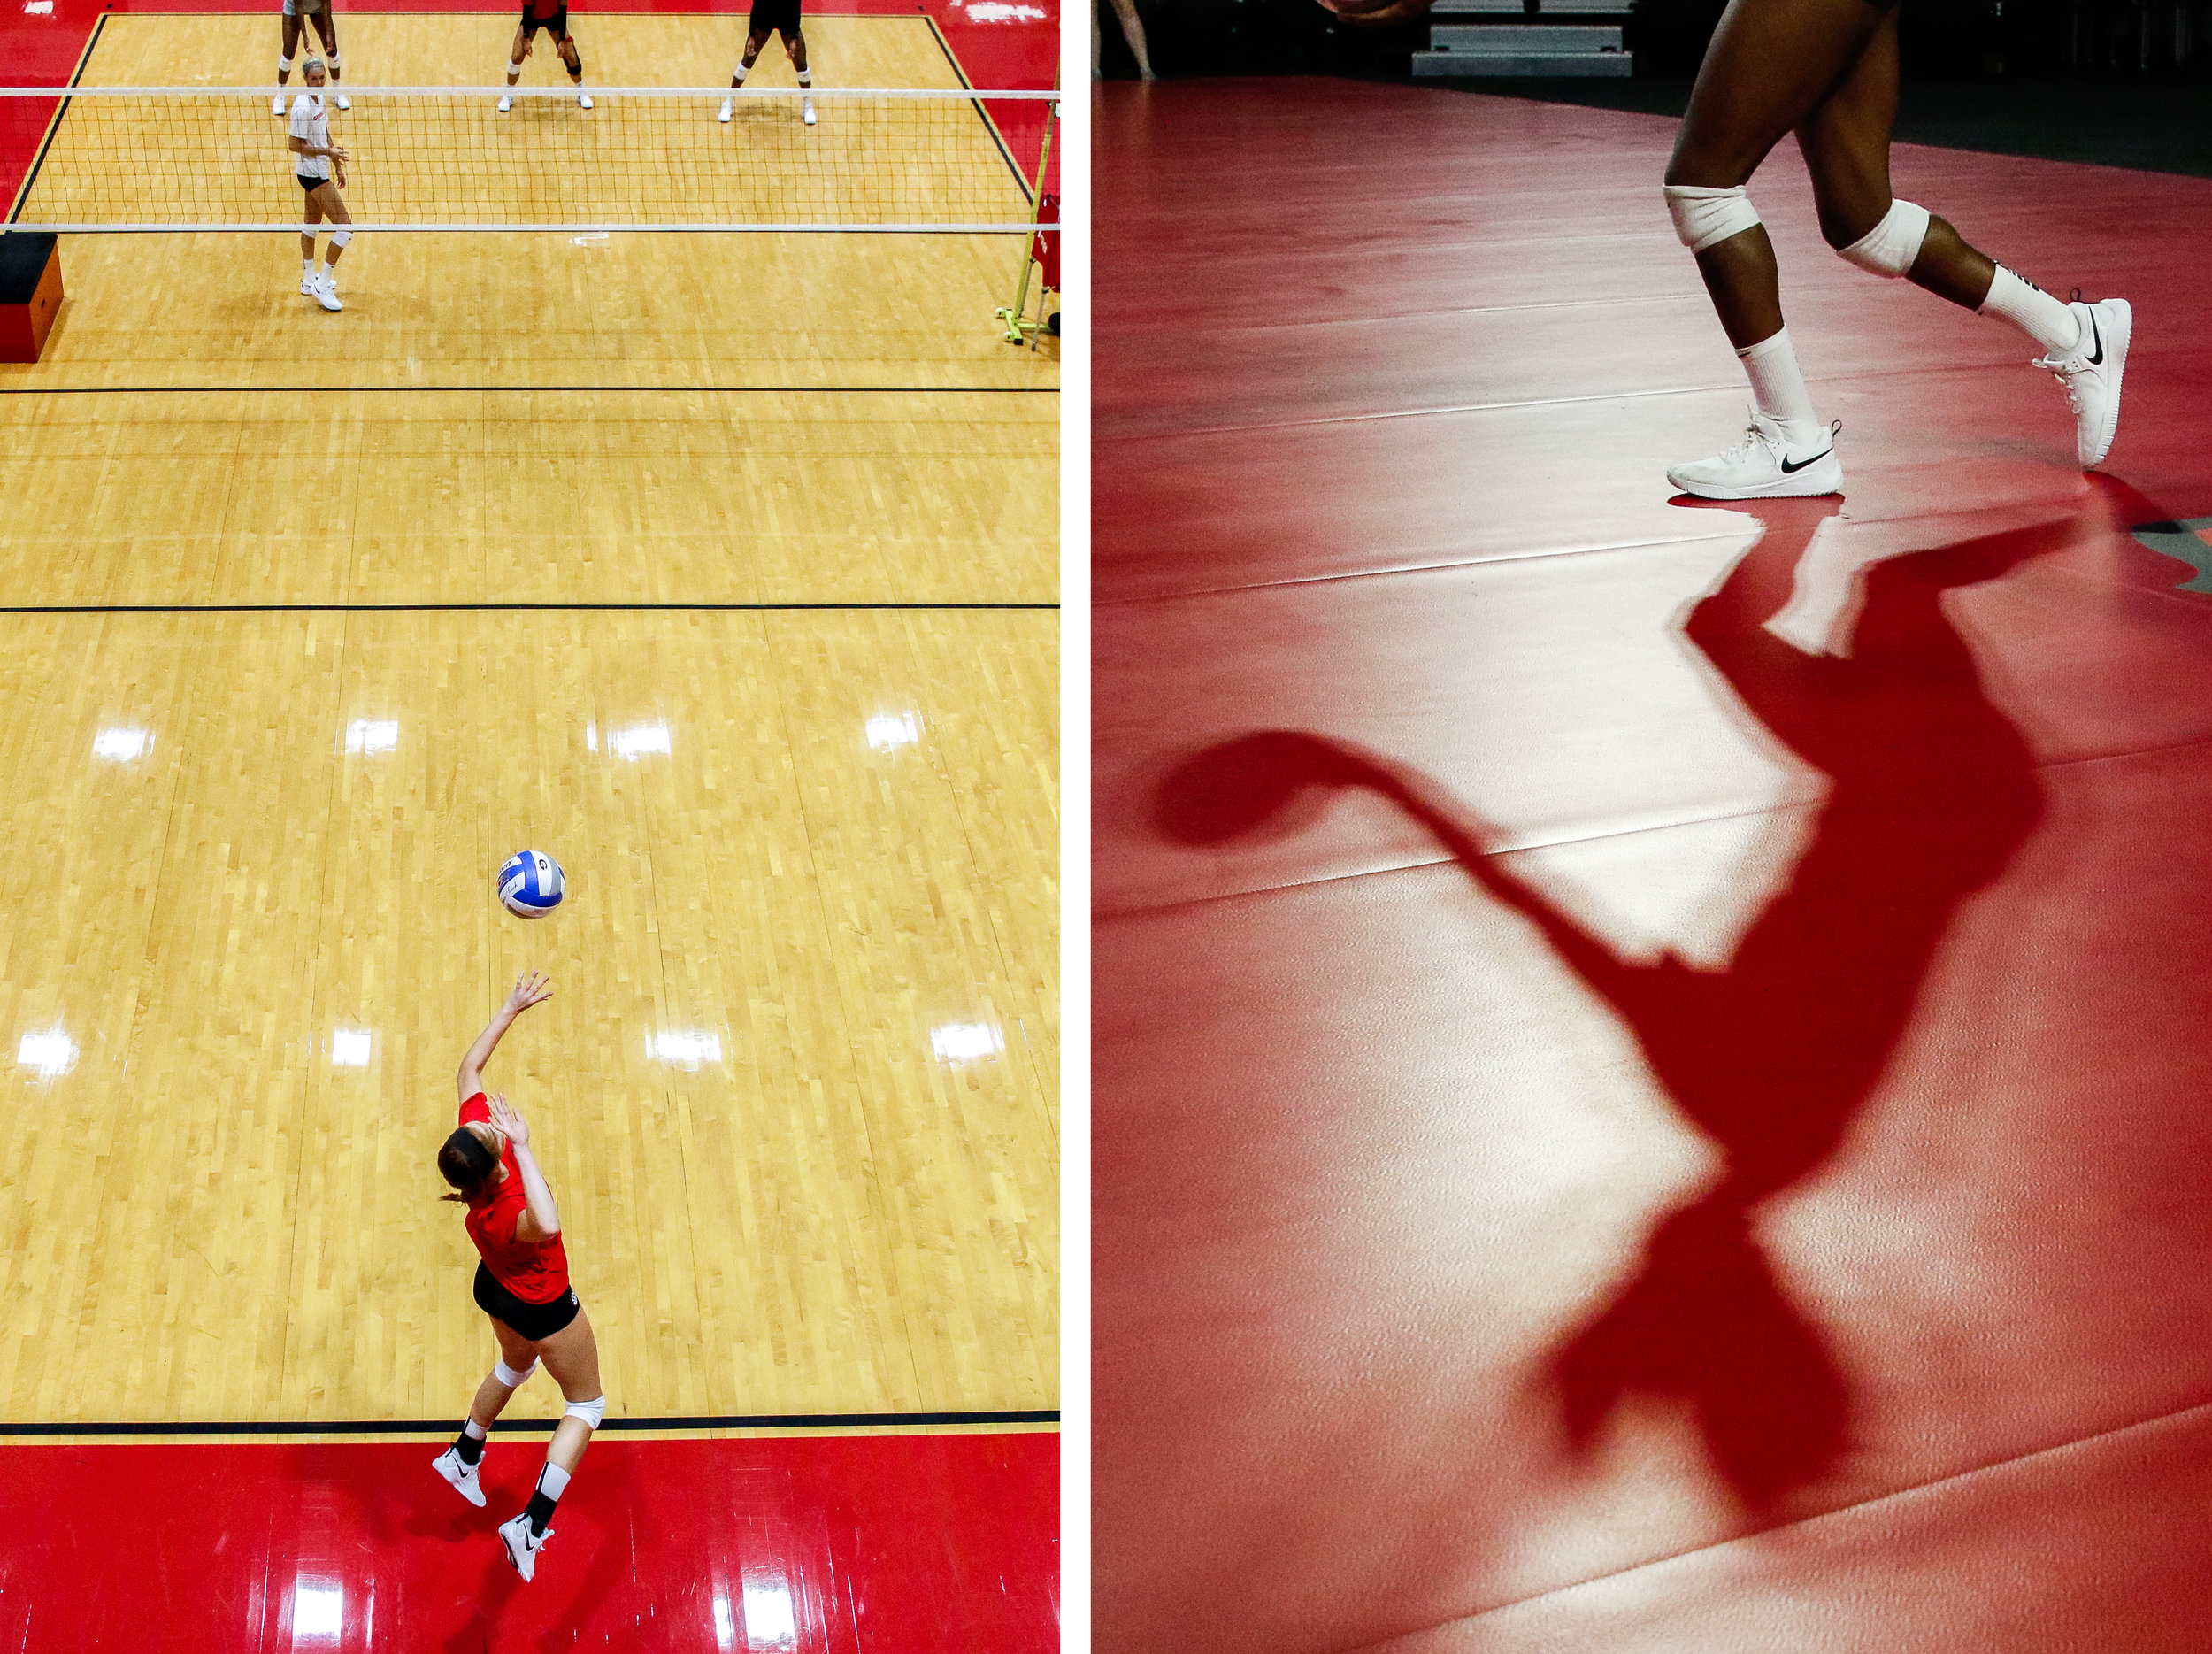 (Left): Georgia middle blocker Kianna Young (17) serves during their first practice of the season in Athens, Ga., on Monday, August 6, 2018.   (Right): Georgia outside hitter T'ara Ceasar (1) serves during their first scrimmage of the season in Athens, Ga., on Saturday, August 18, 2018.